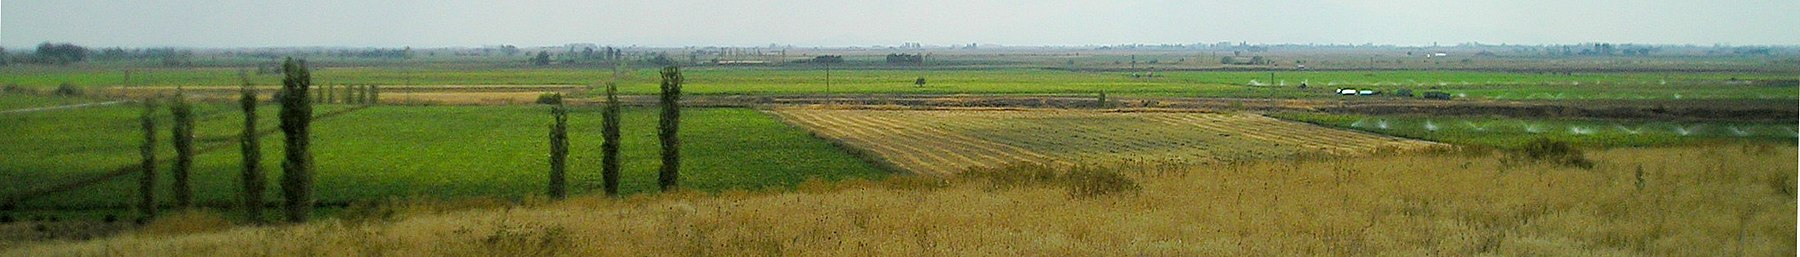 The fertile steppes around Çatalhöyük, which gave rise to one of the earliest sedentary communities of the humankind